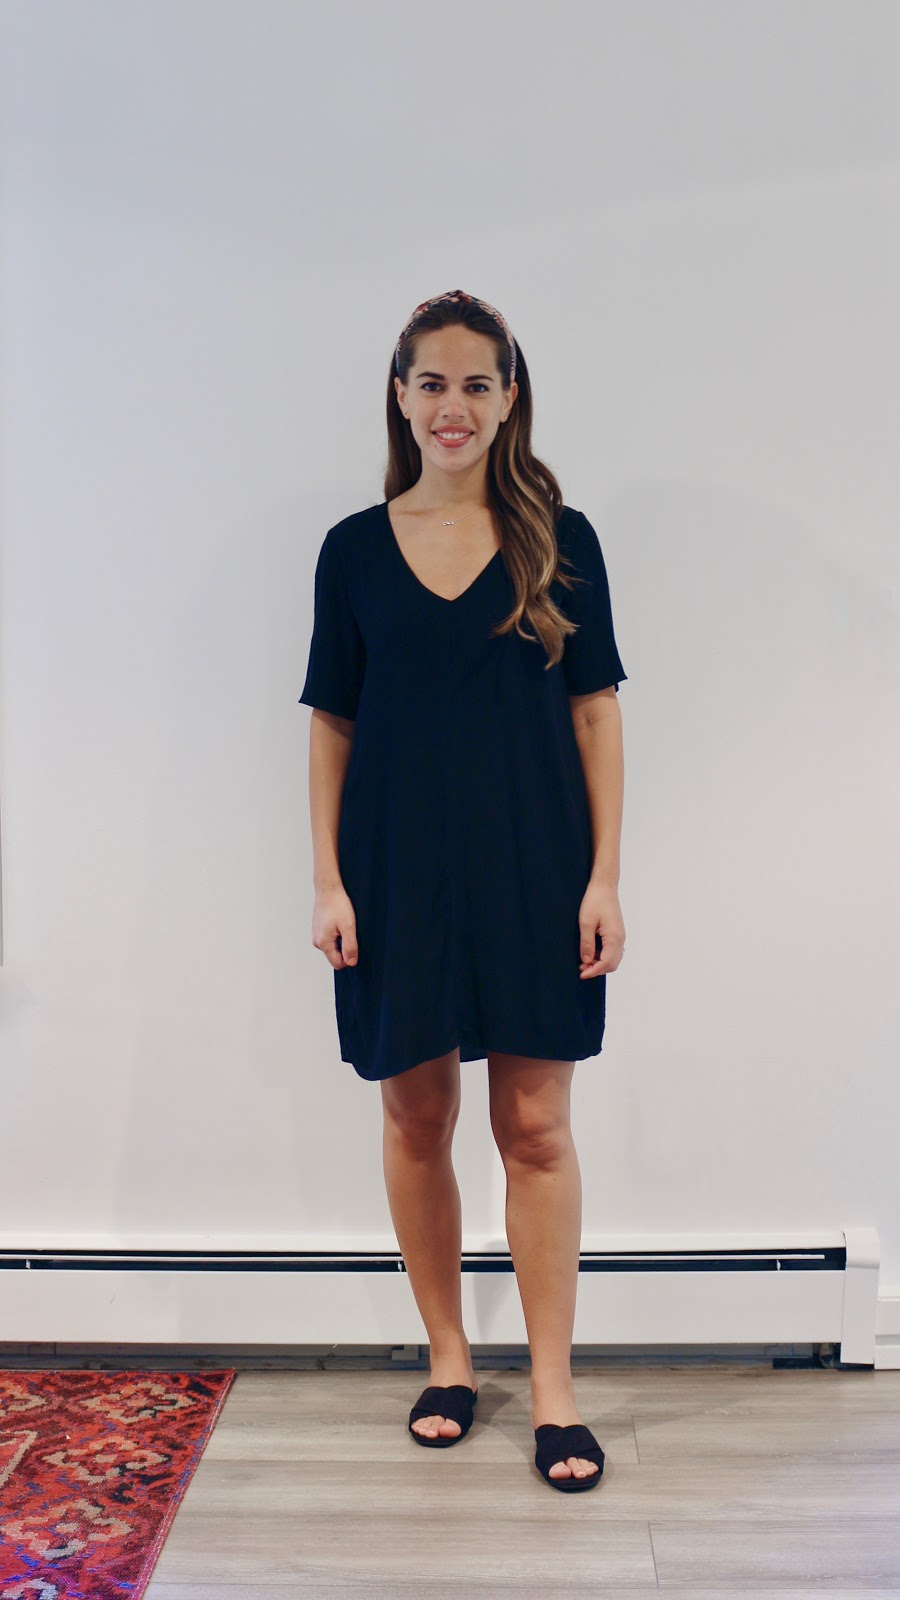 Jules in Flats -  Wilfred T-Shirt Dress with Headband (Business Casual Summer Workwear on a Budget)